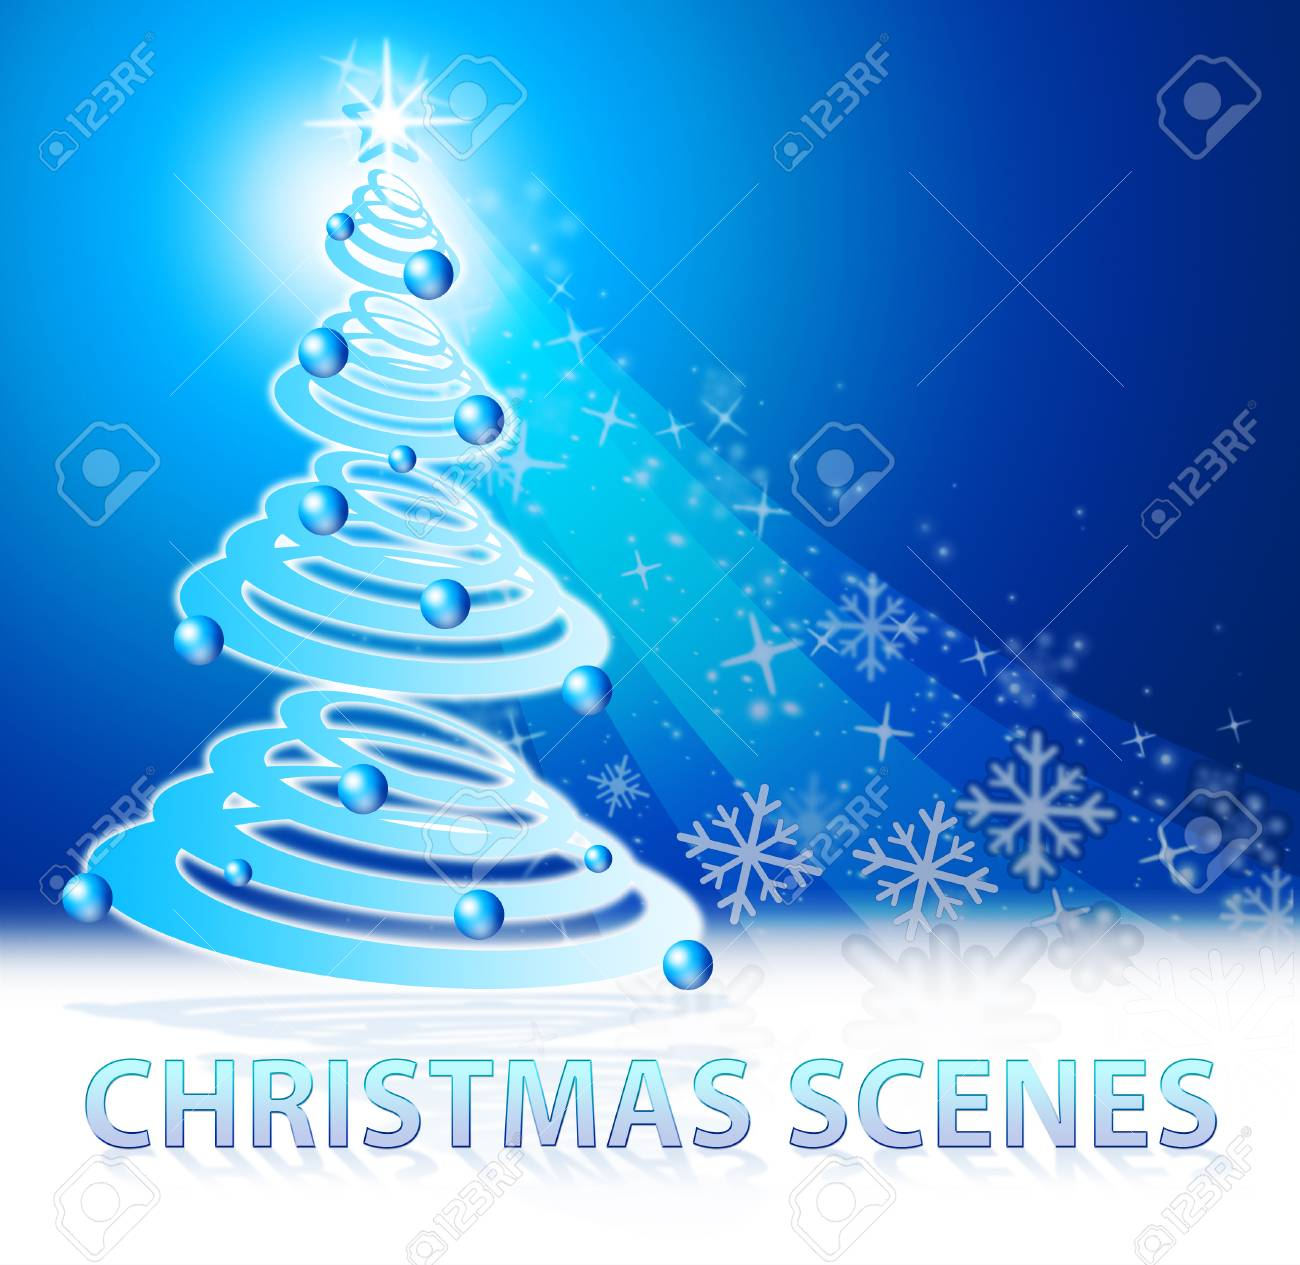 Christmas Scenes Images.Stock Illustration